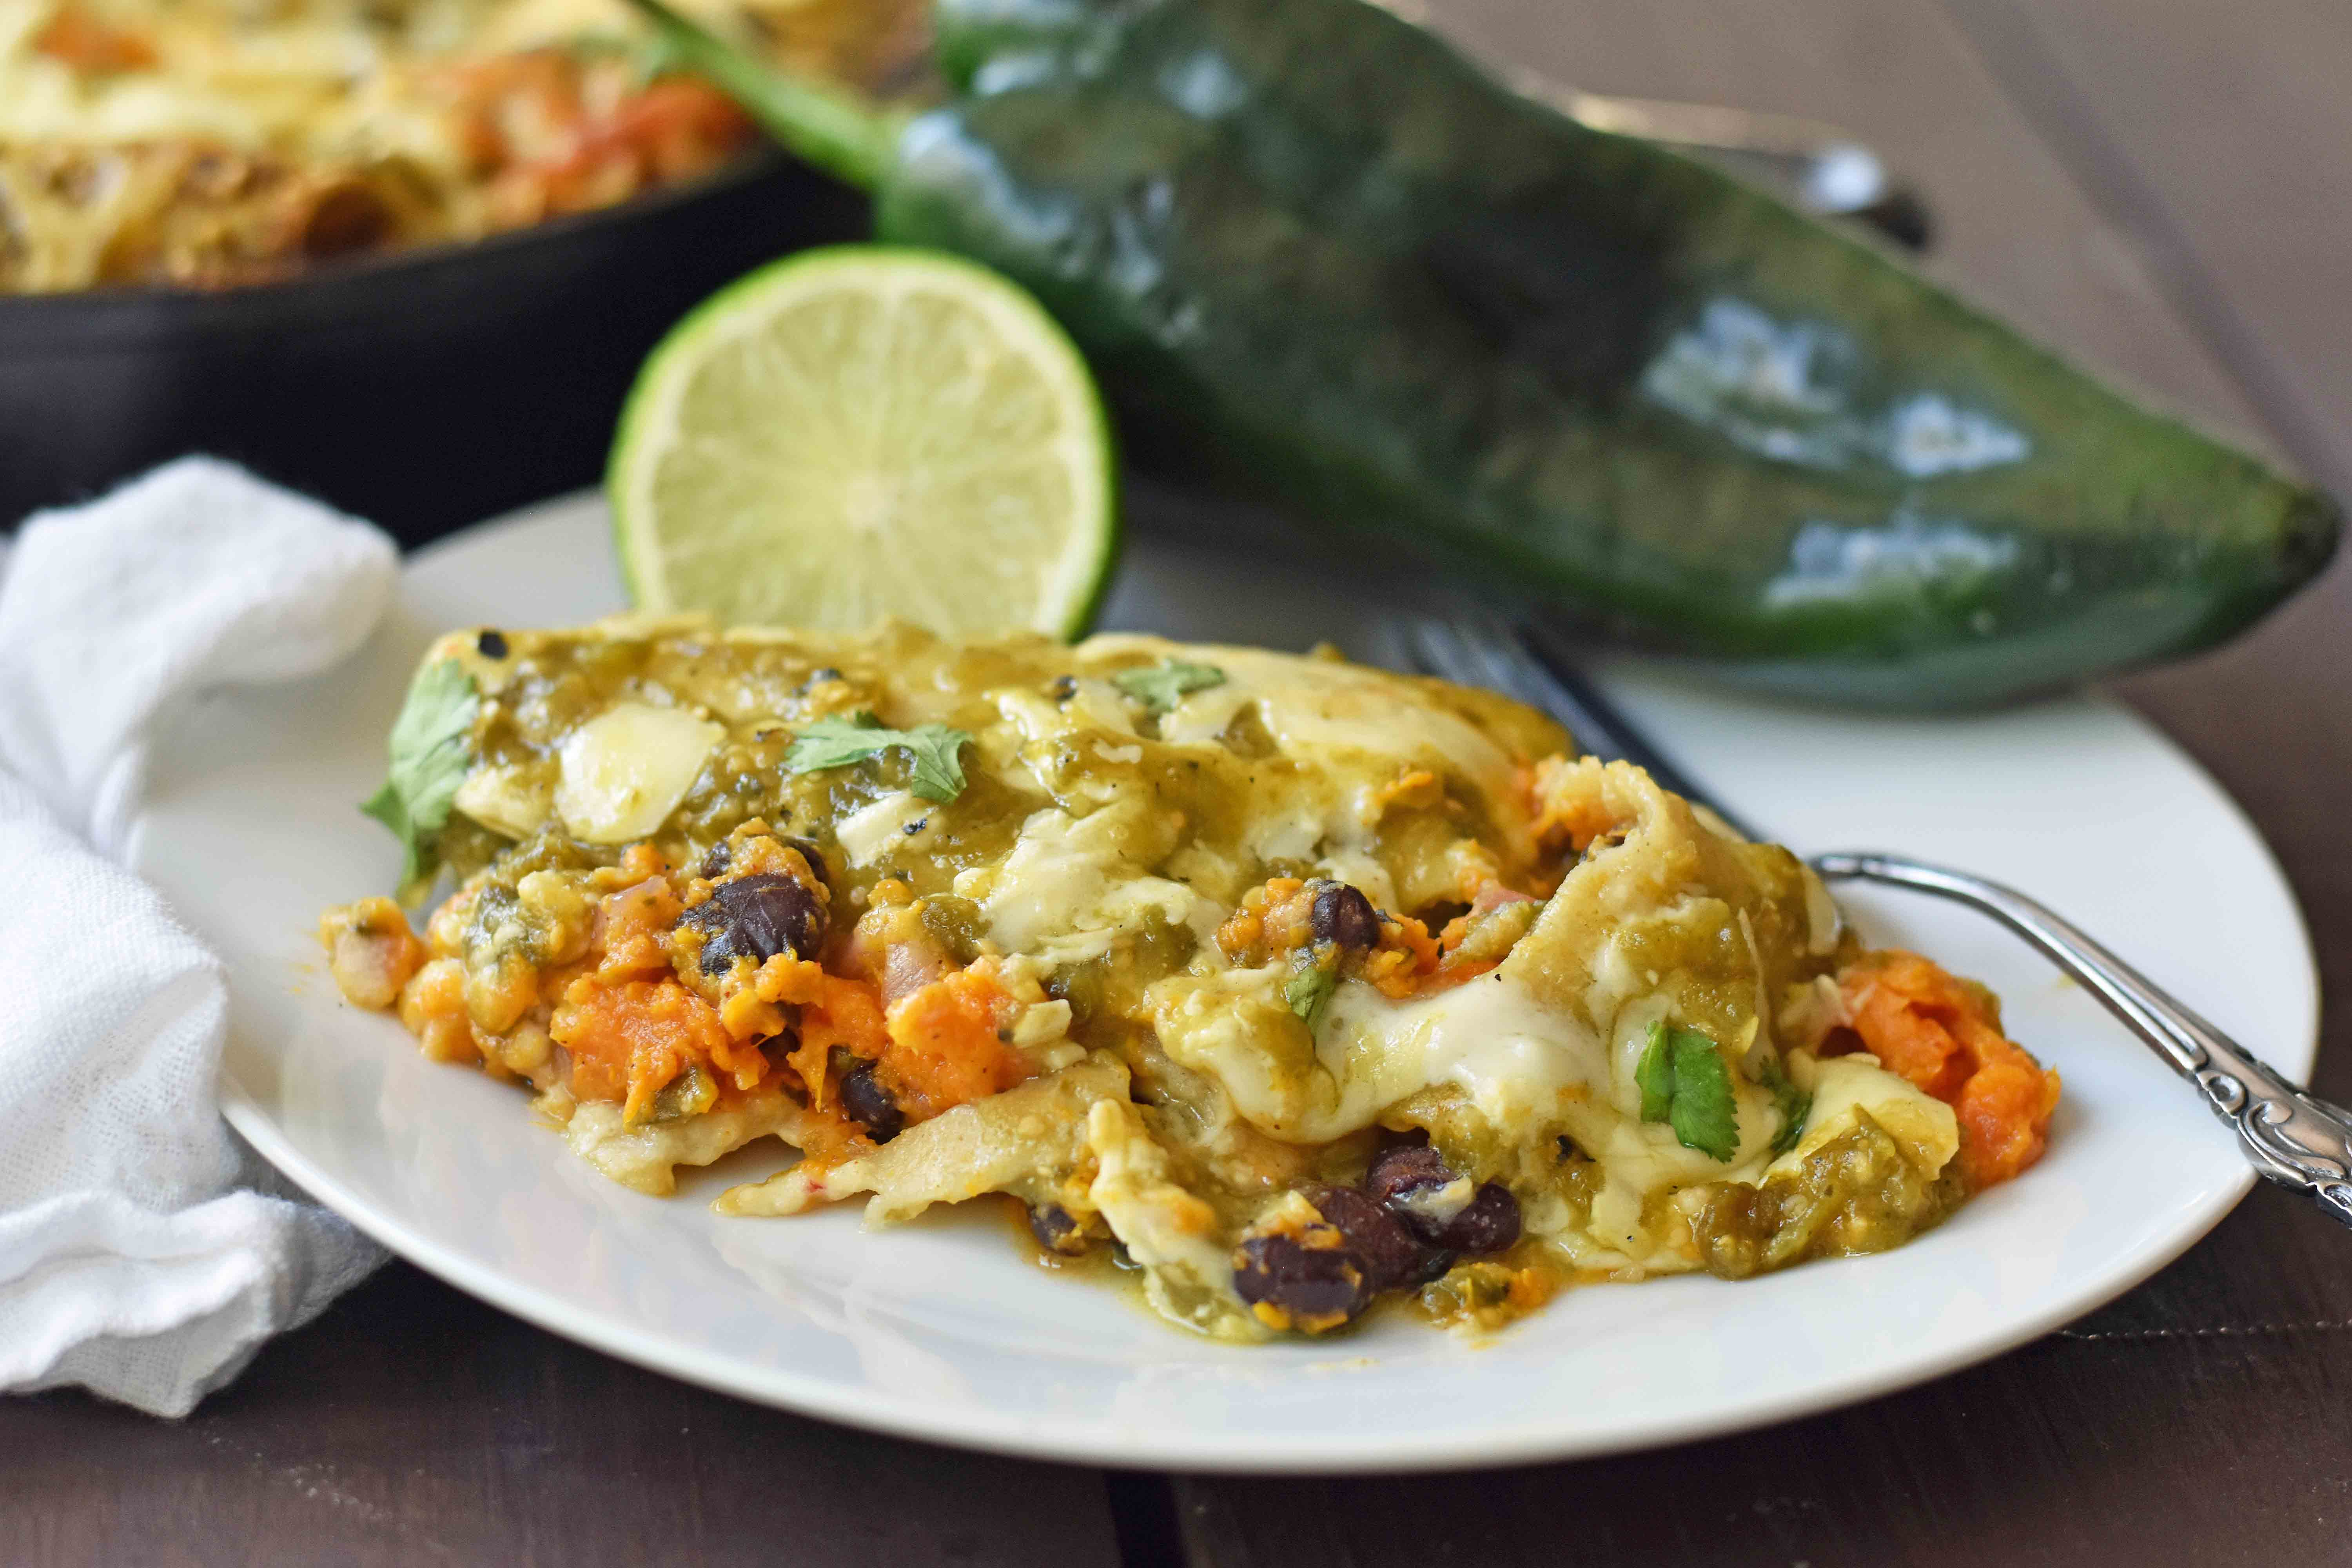 Sweet Potato Poblano Enchiladas. Vegetarian enchiladas with black beans, sweet potato, and poblano peppers topped with salsa verde and Mexican cheeses. A healthy comfort meal. www.modernhoney.com